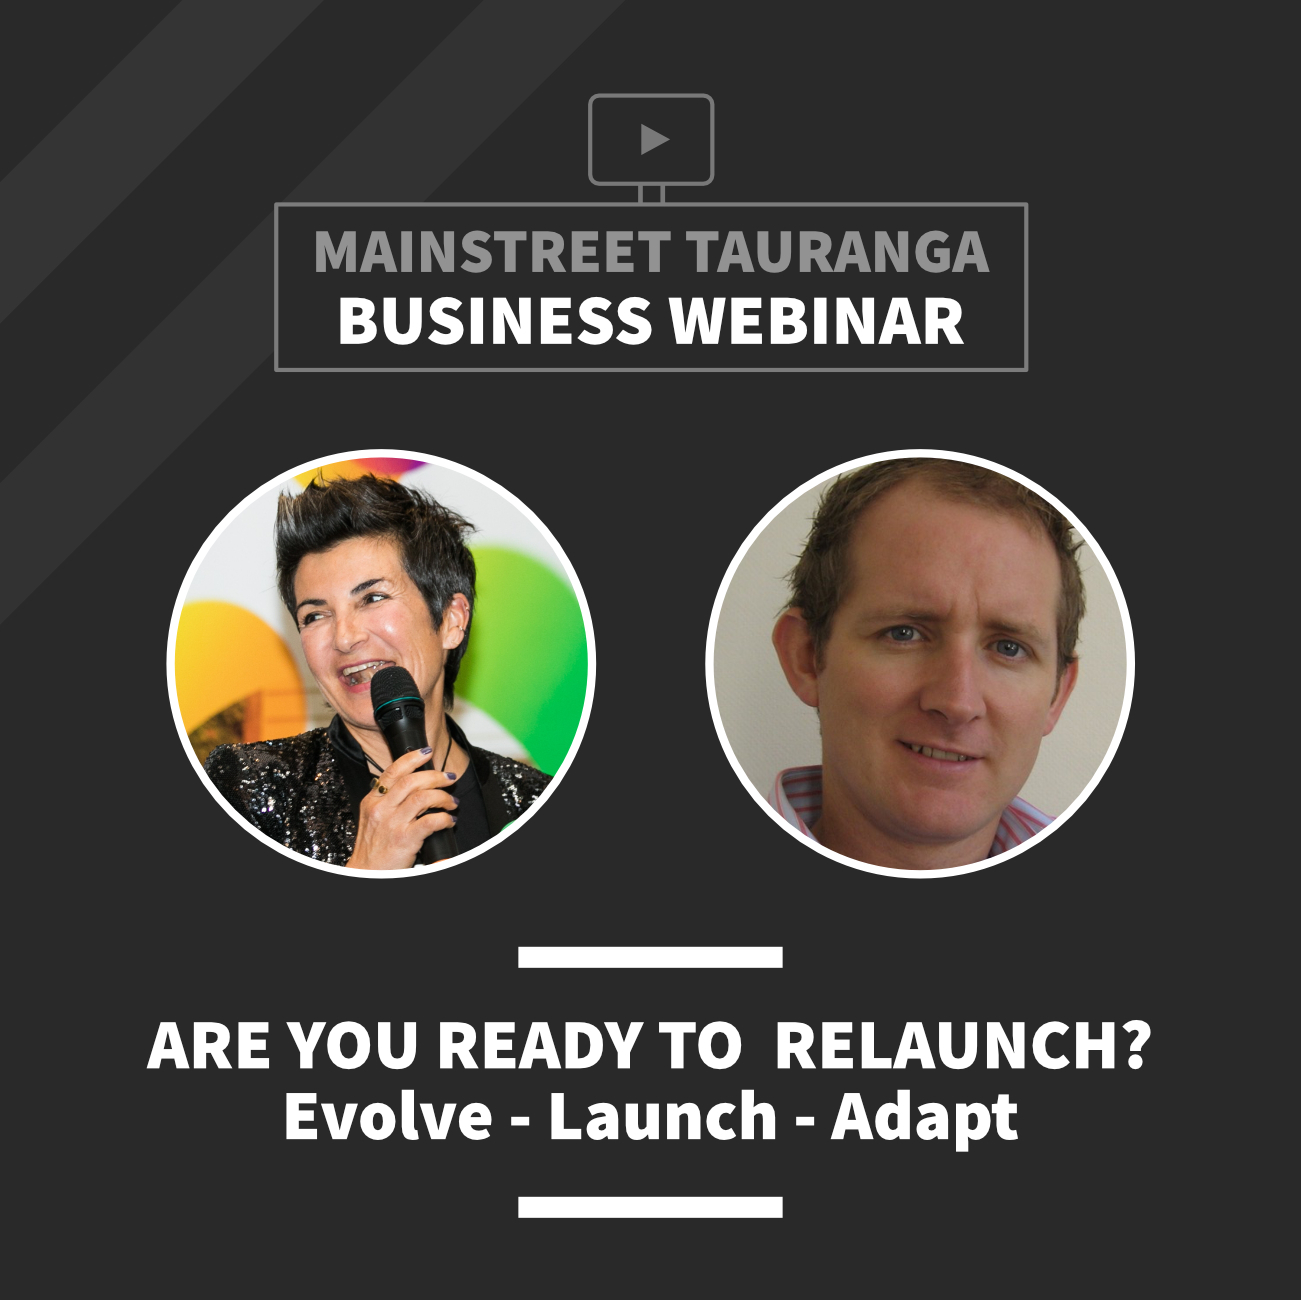 Is your business ready to relaunch?